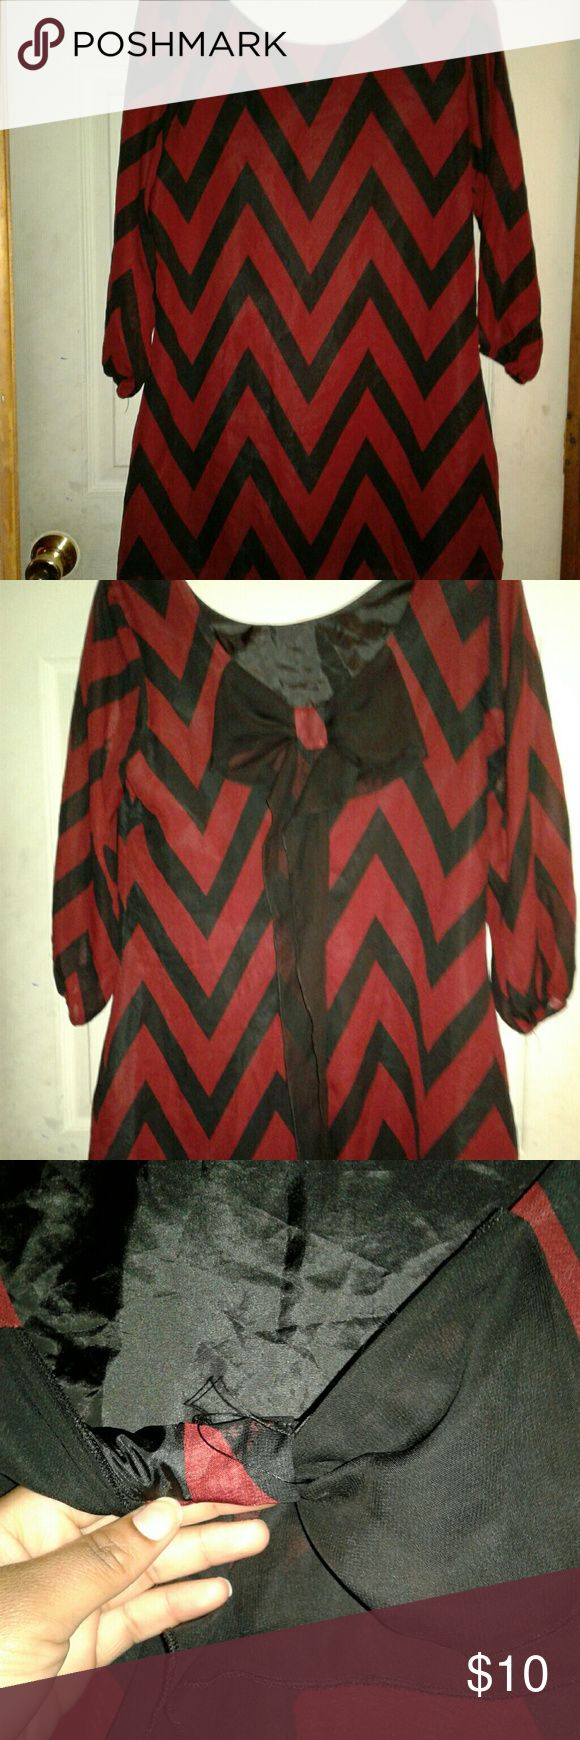 Chick chevron blouse Navy blue and burgundy chevron blouse with bow at the back. Worn 2x. Has strings hanging on the inside of short. Def unnoticeable but thought I would mention Tops